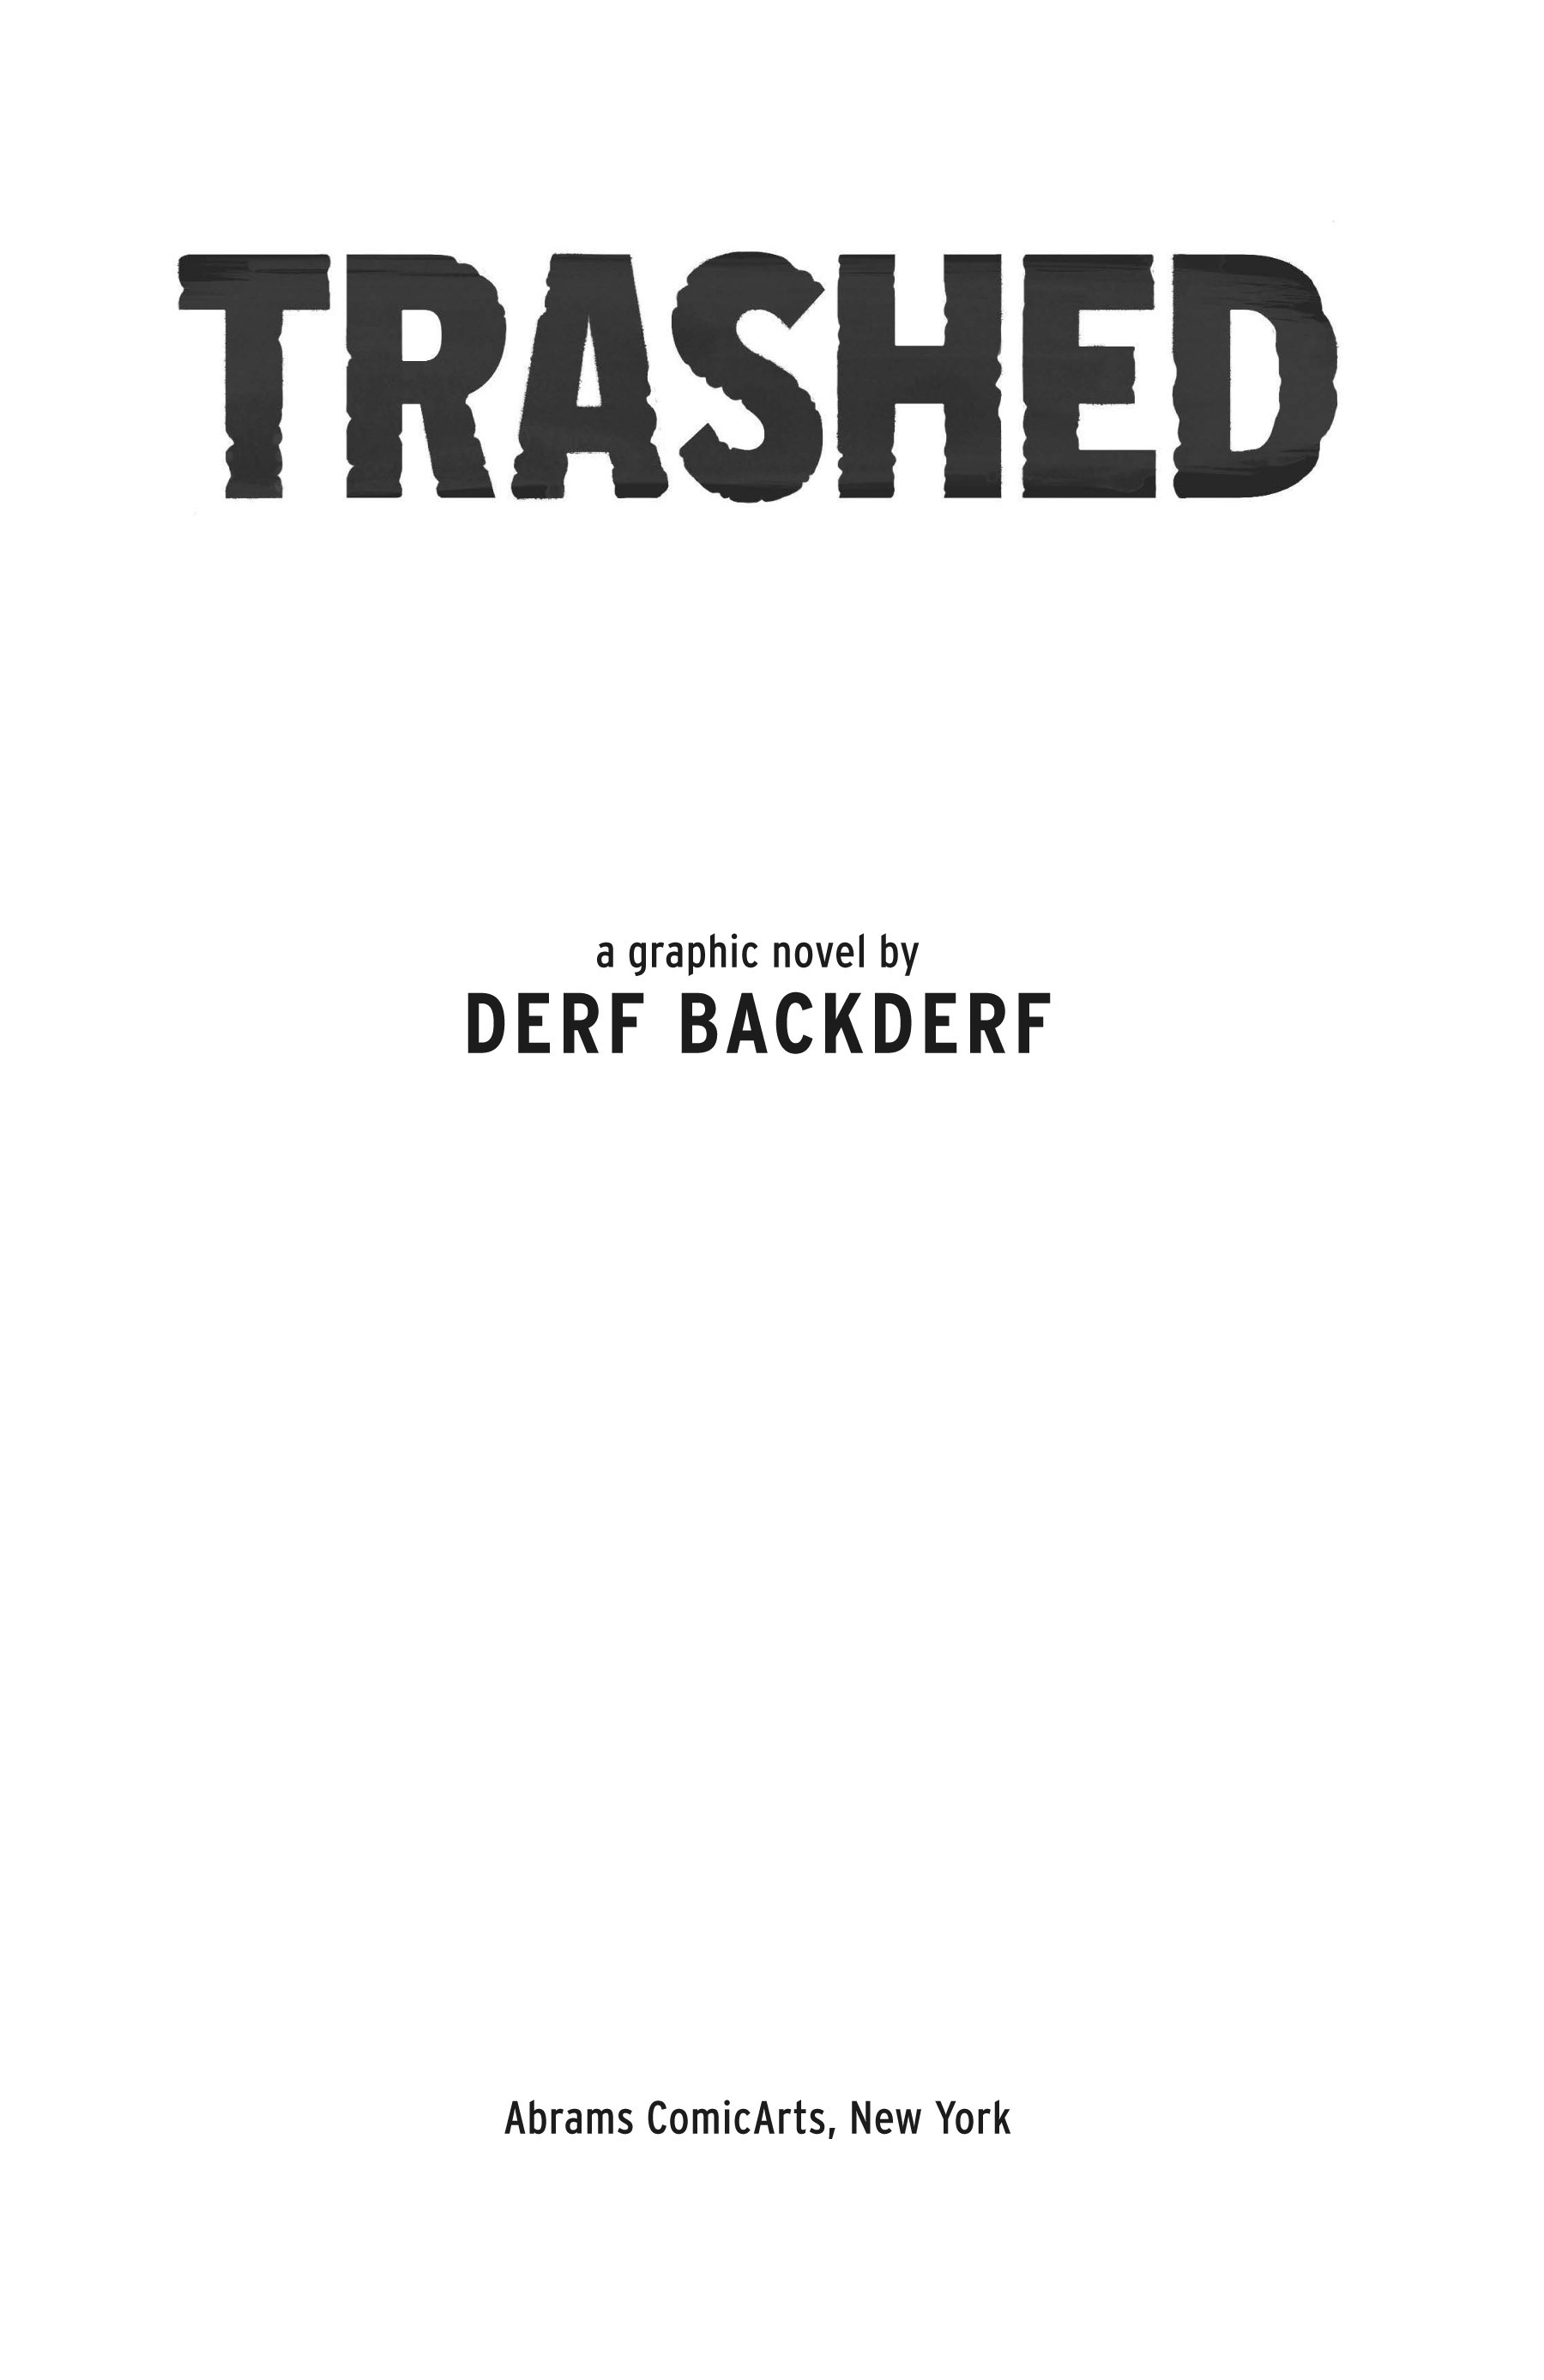 Read online Trashed comic -  Issue # Full - 6